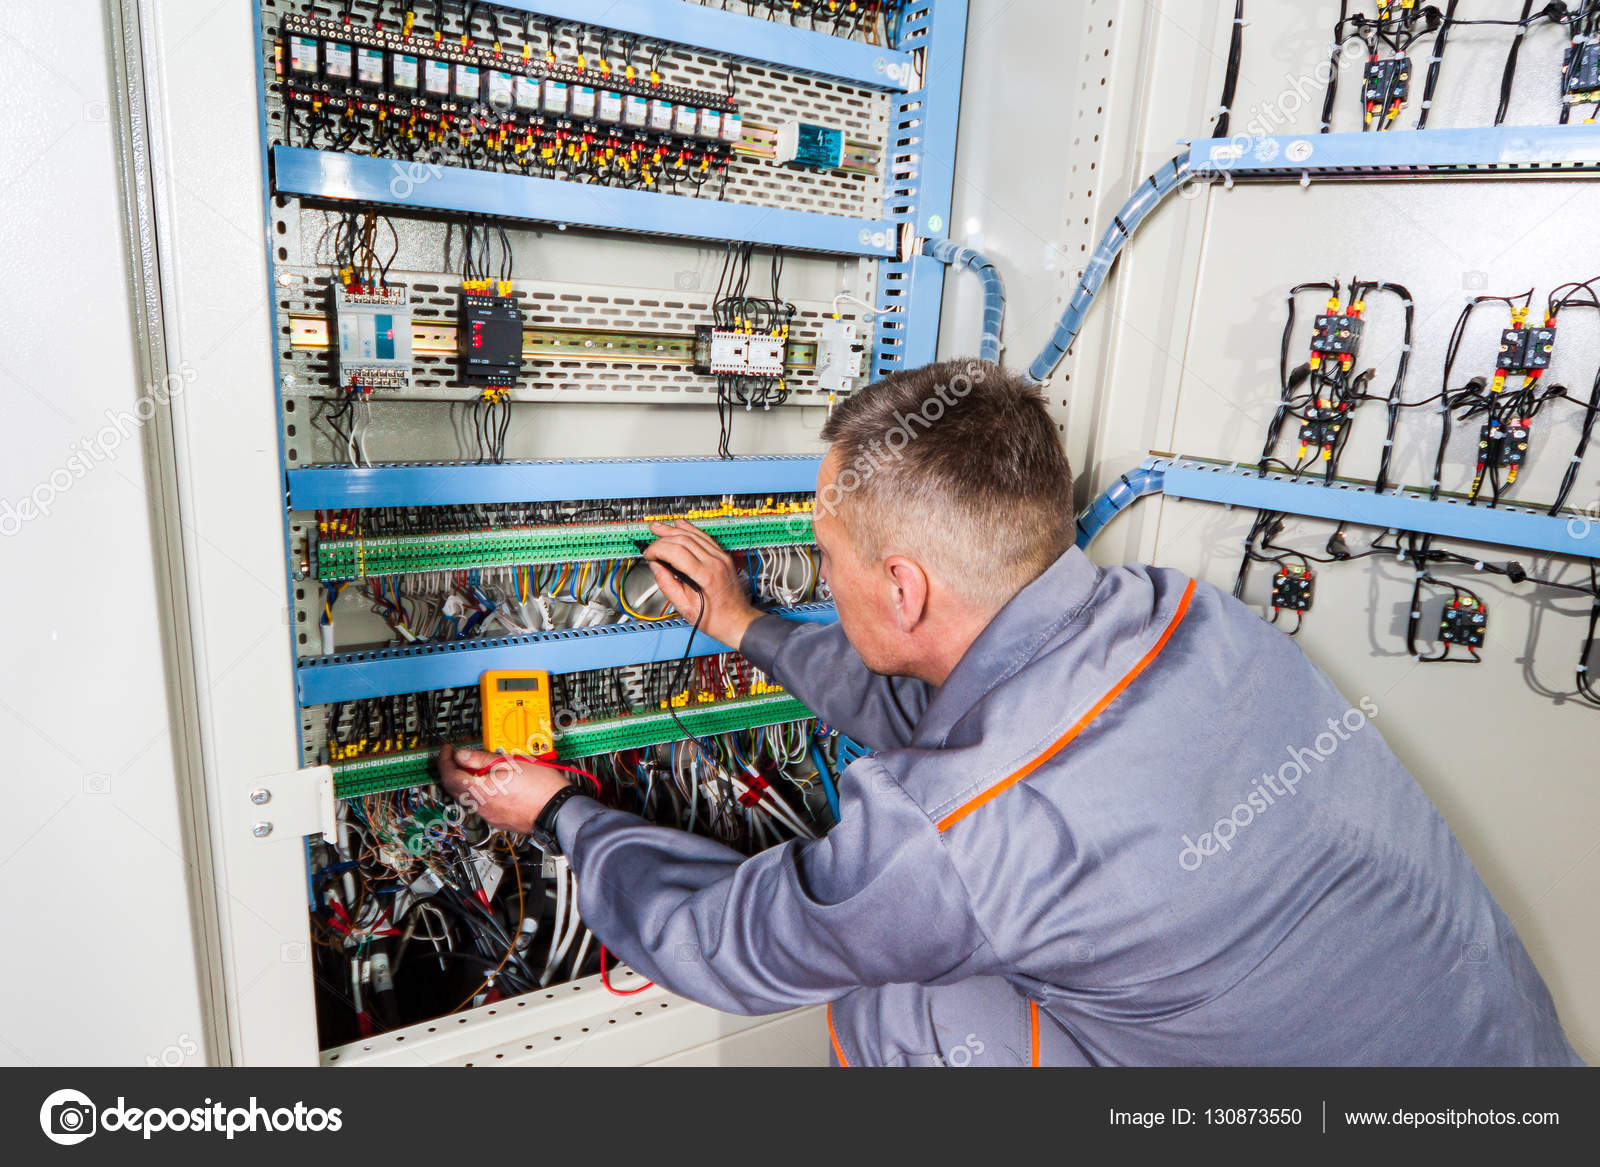 electrician testing industrial machine, electrician builder engineer  screwing equipment in fuse box, male electrician ⬇ stock photo, image by ©  bondvit #130873550  depositphotos